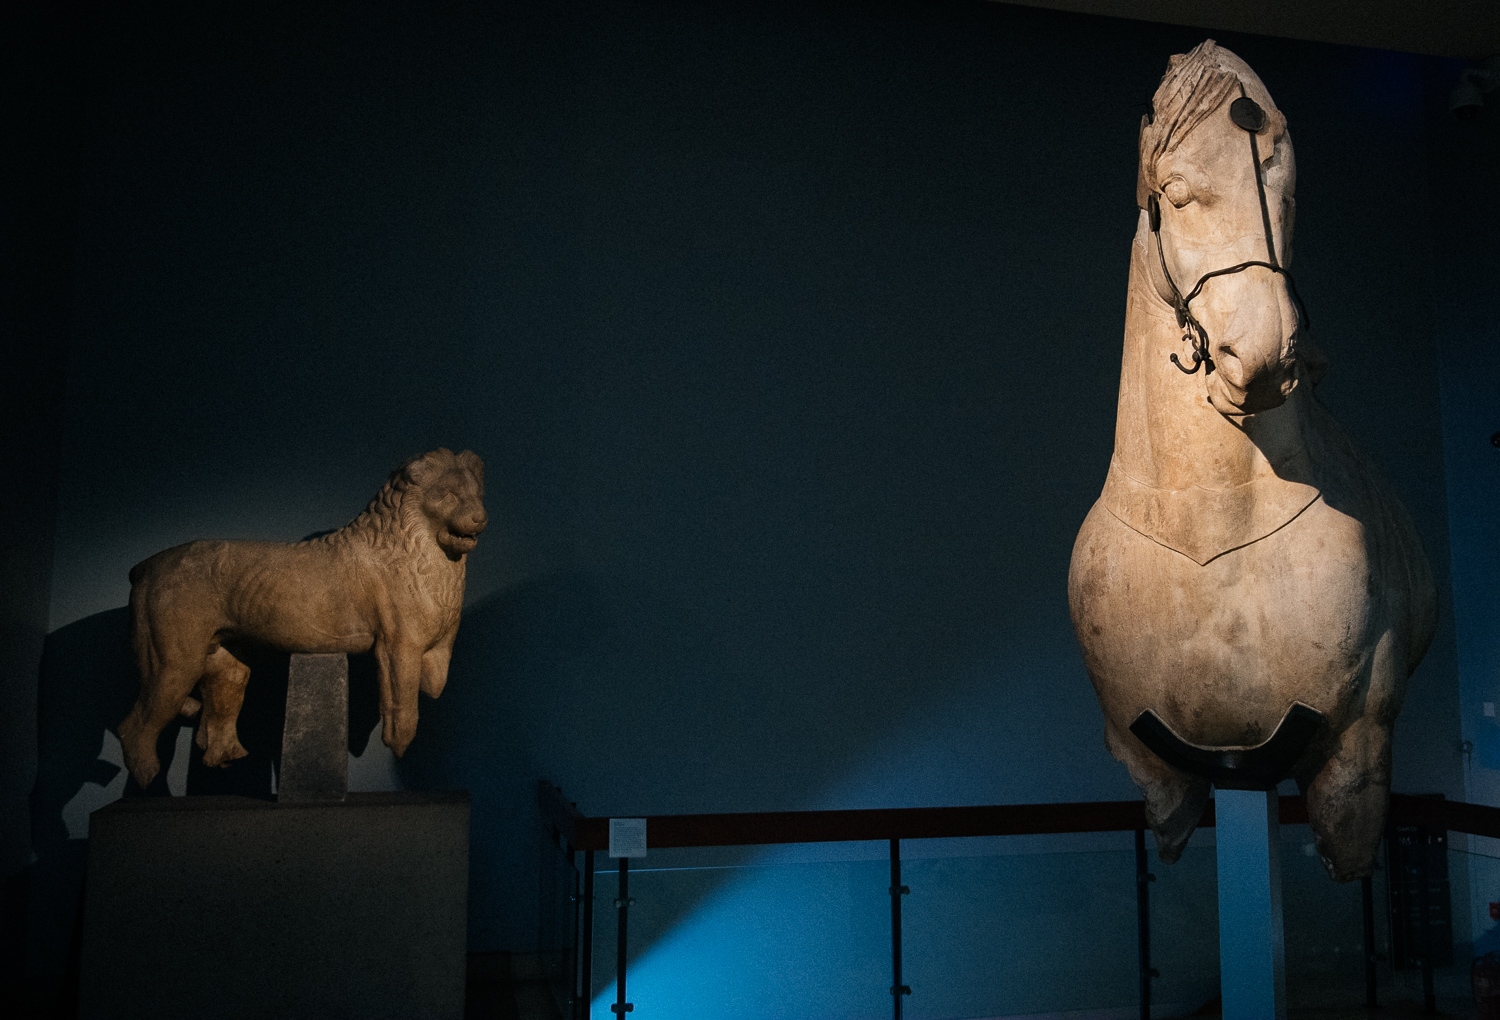 One of the four horses that stood on top of the Mausoleum is preserved in the British Museum, as are the lions that decorated the entrance.